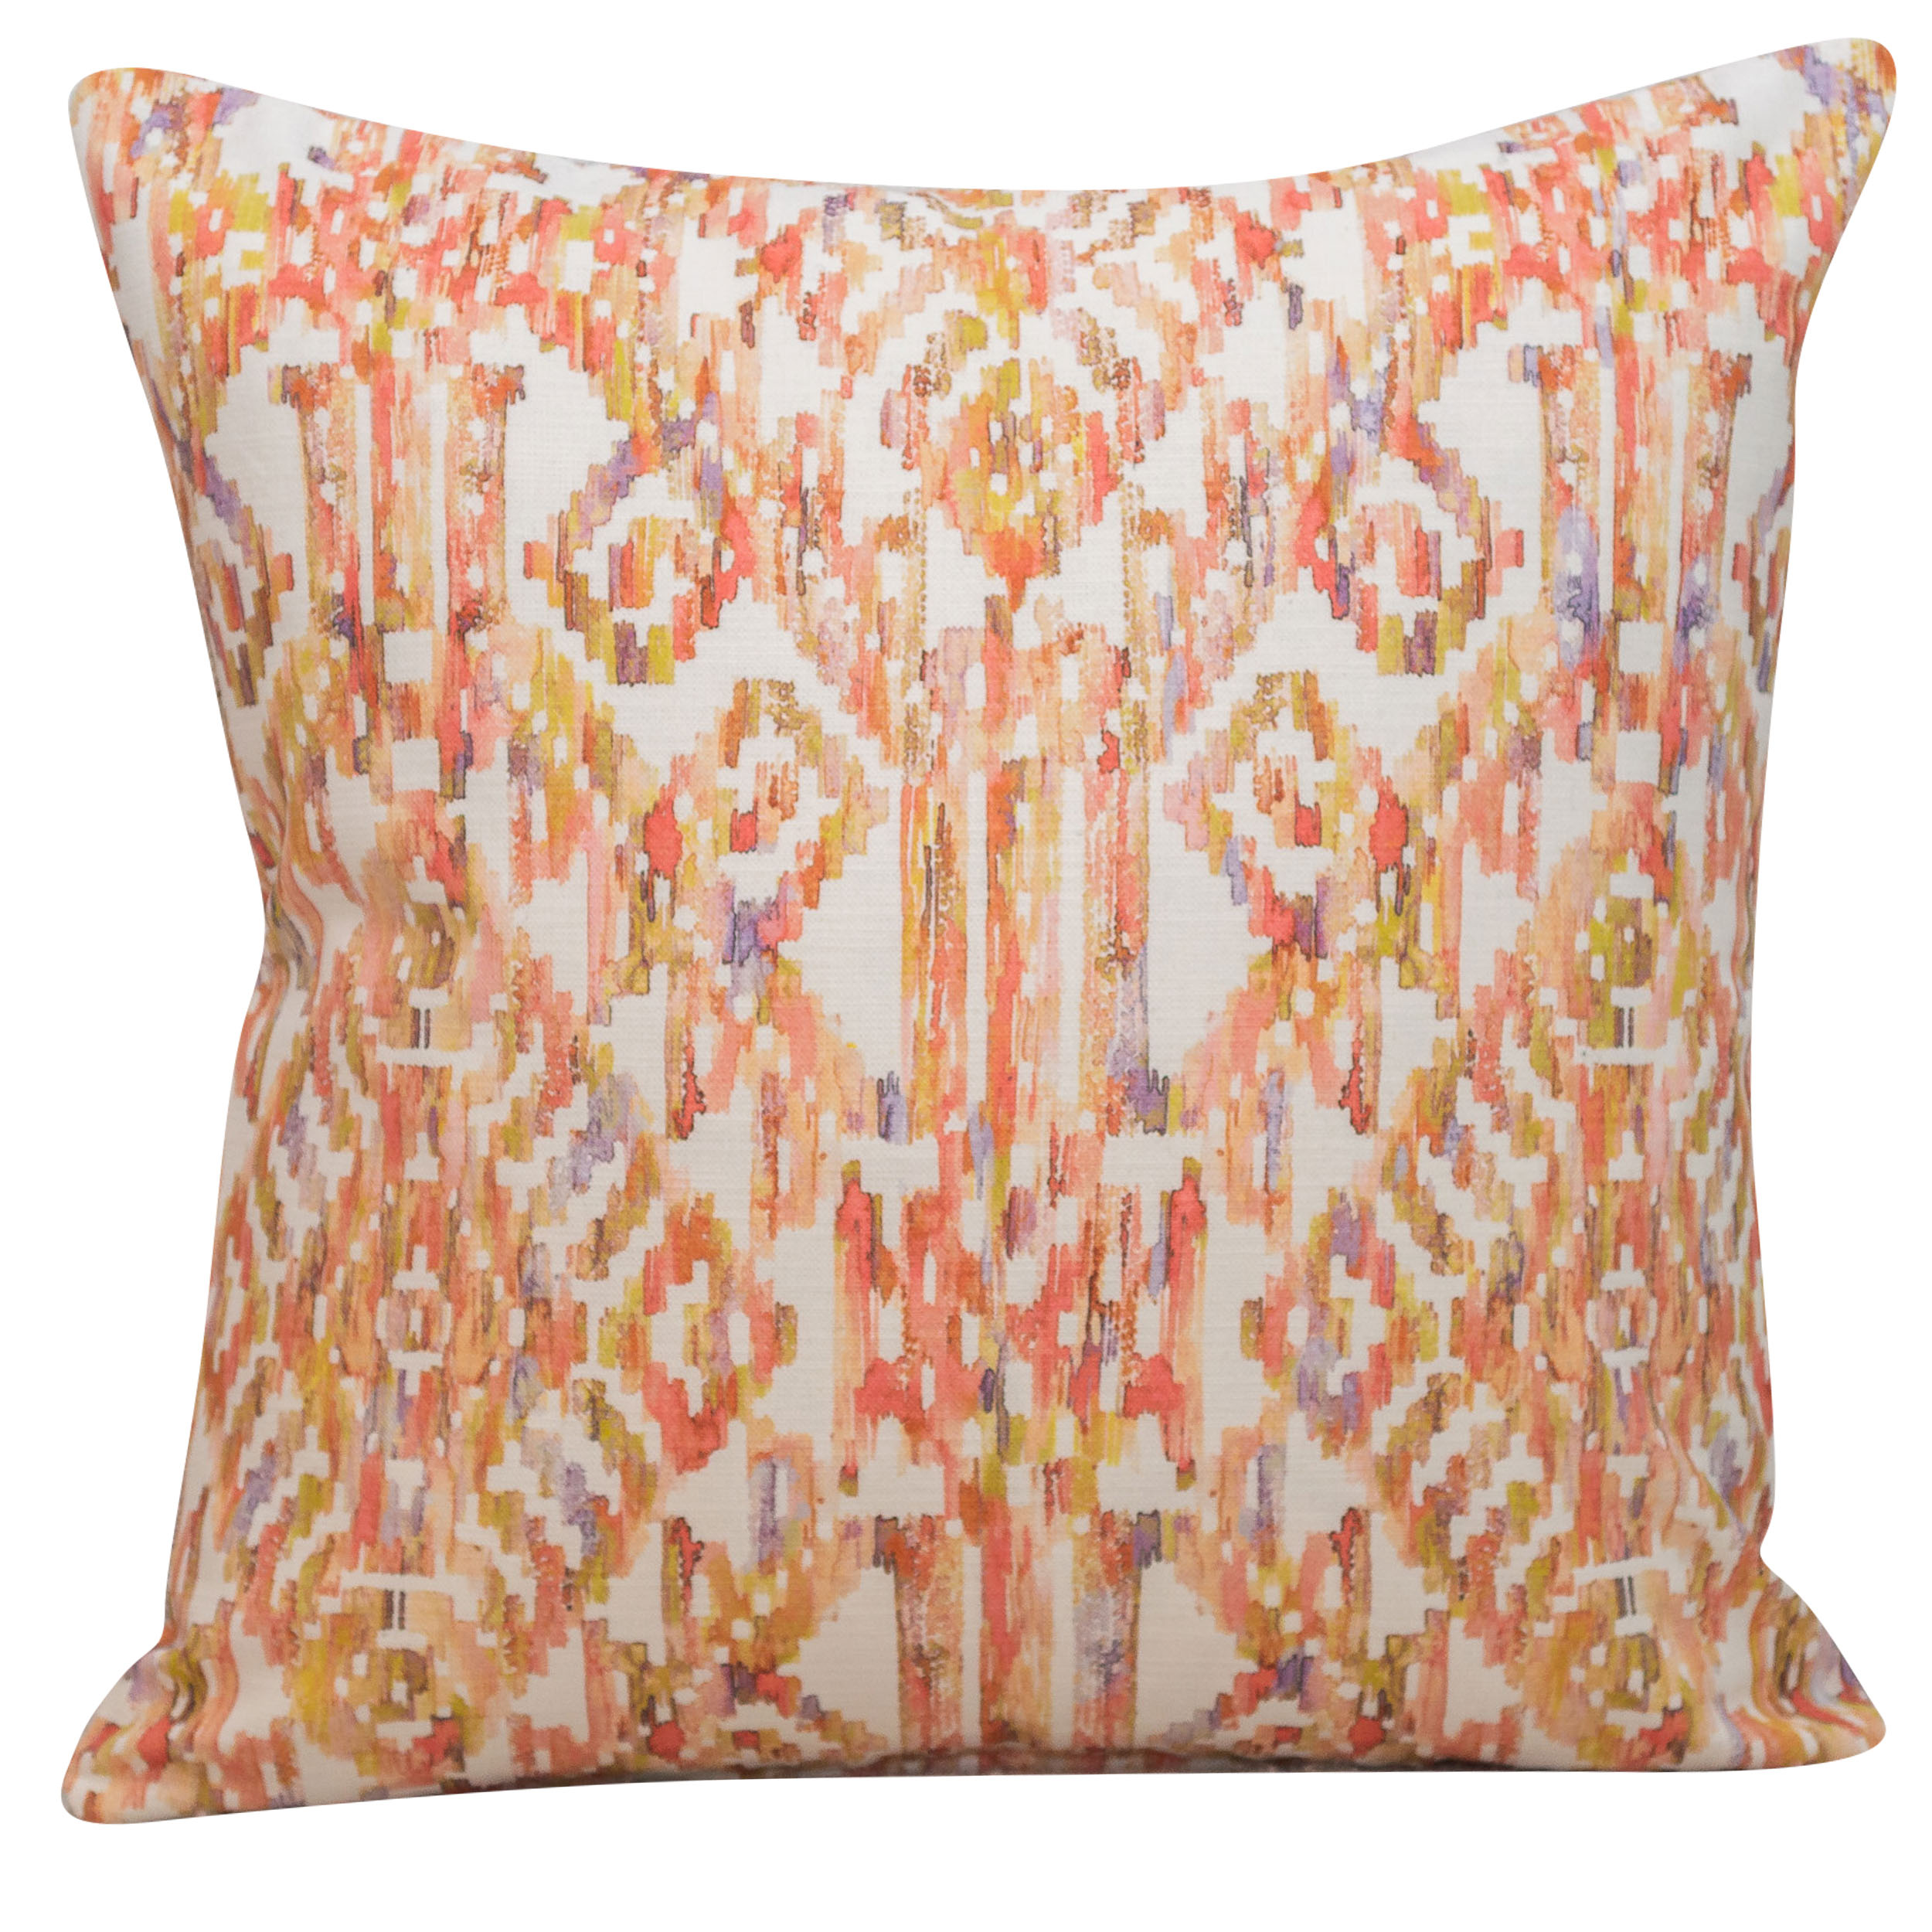 Moroccan Trellis Cushion in Coral